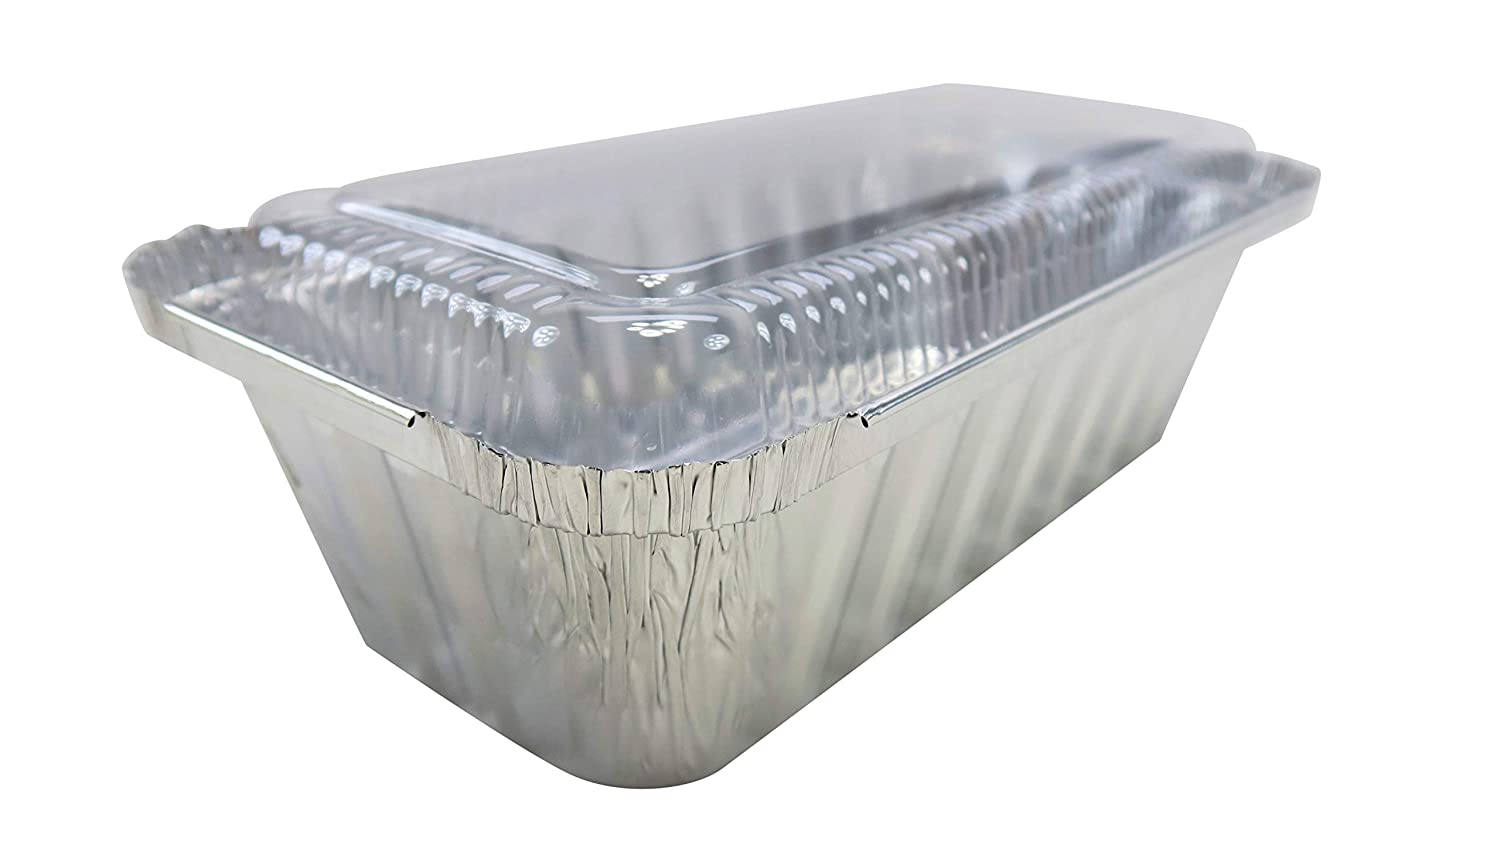 KitchenDance Disposable Limited Special Price 2 Pound Closable with Loaf Pan free Plastic L